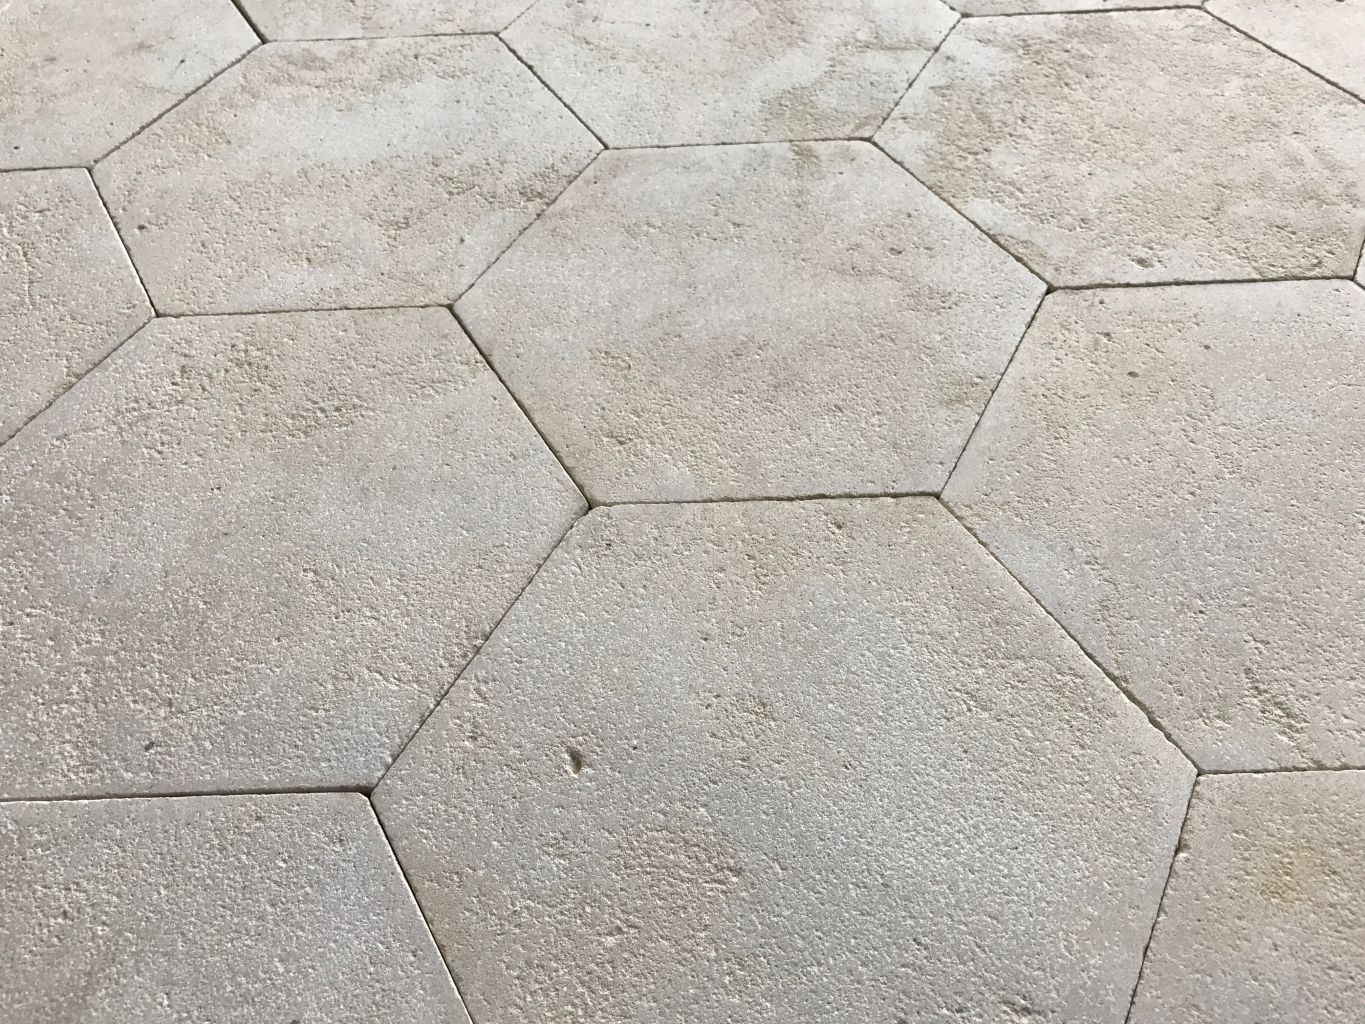 Antiqued limestone hexagon tiling with a deliberately worn surface